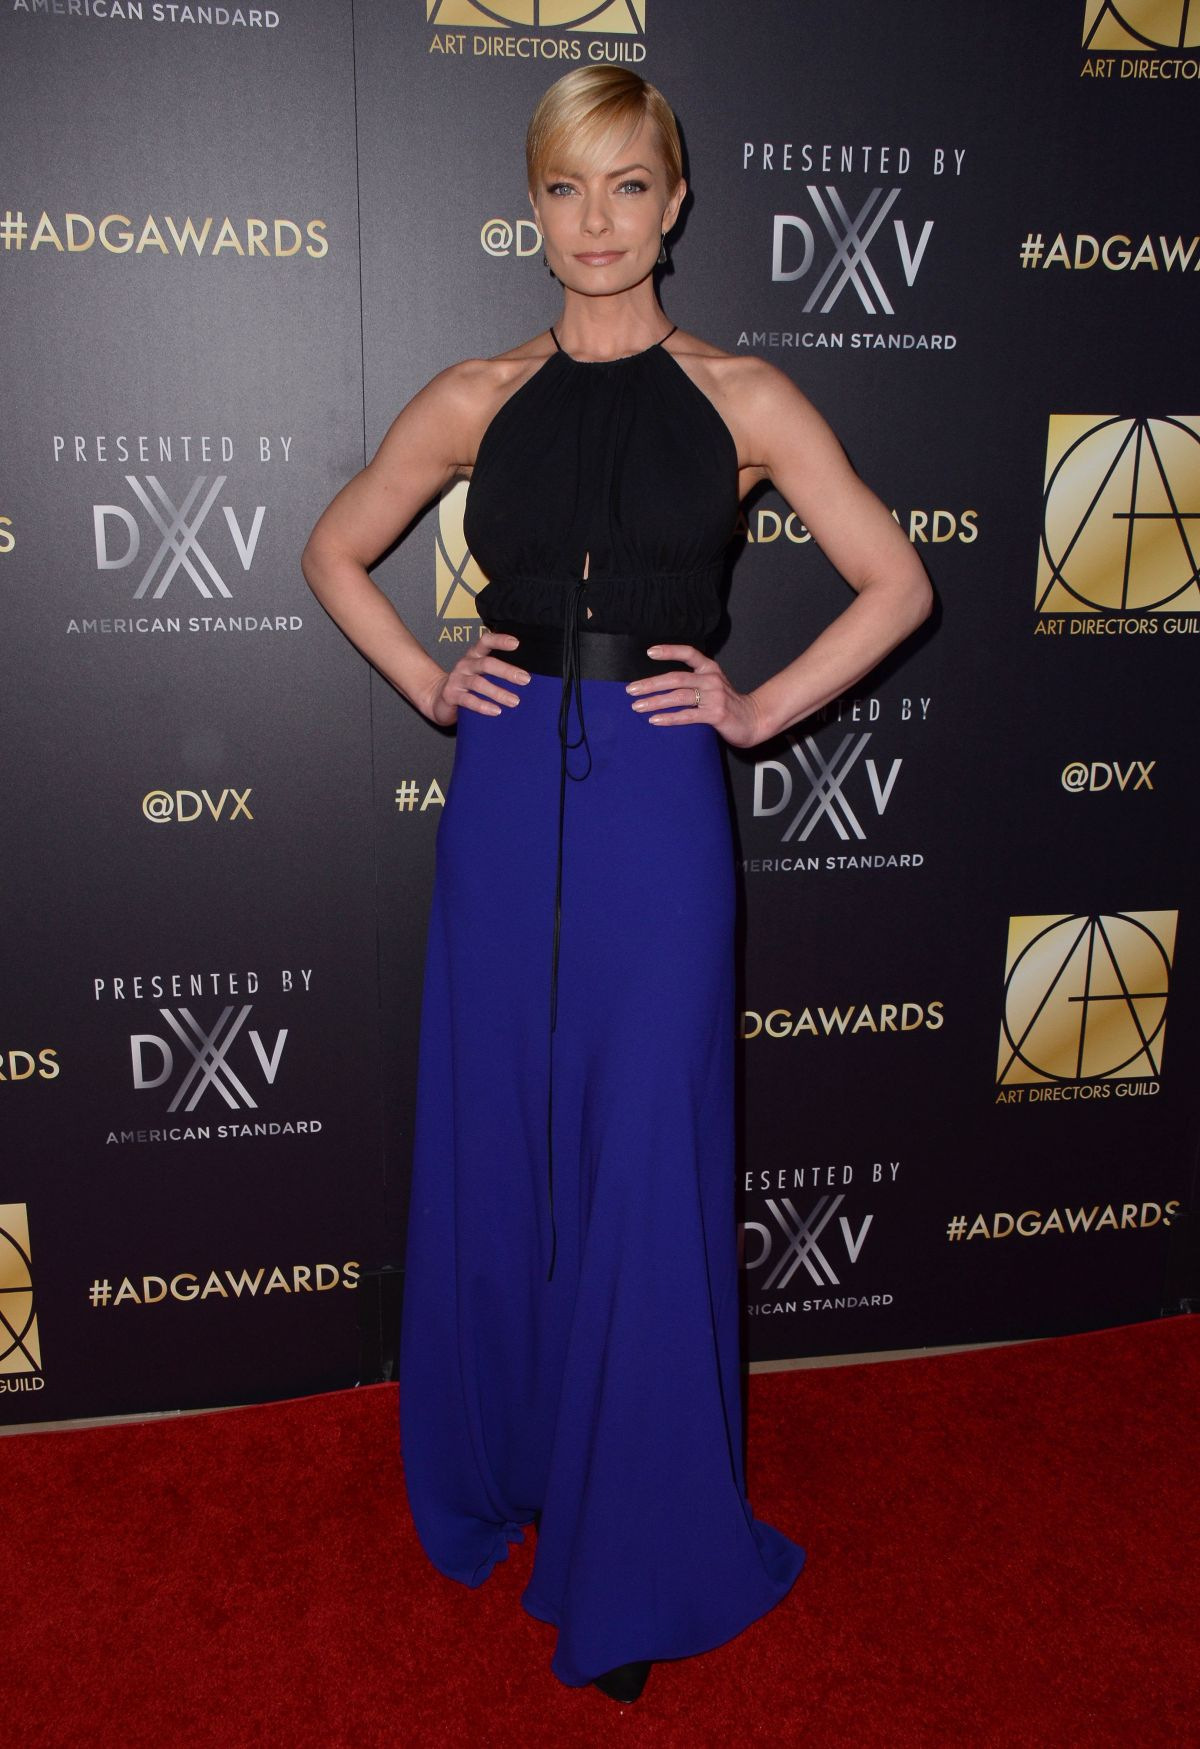 JAIME PRESSLY at Art Directors Guild 20th Annual Excellence in Production Awards in Beverly Hills 01/31/2016